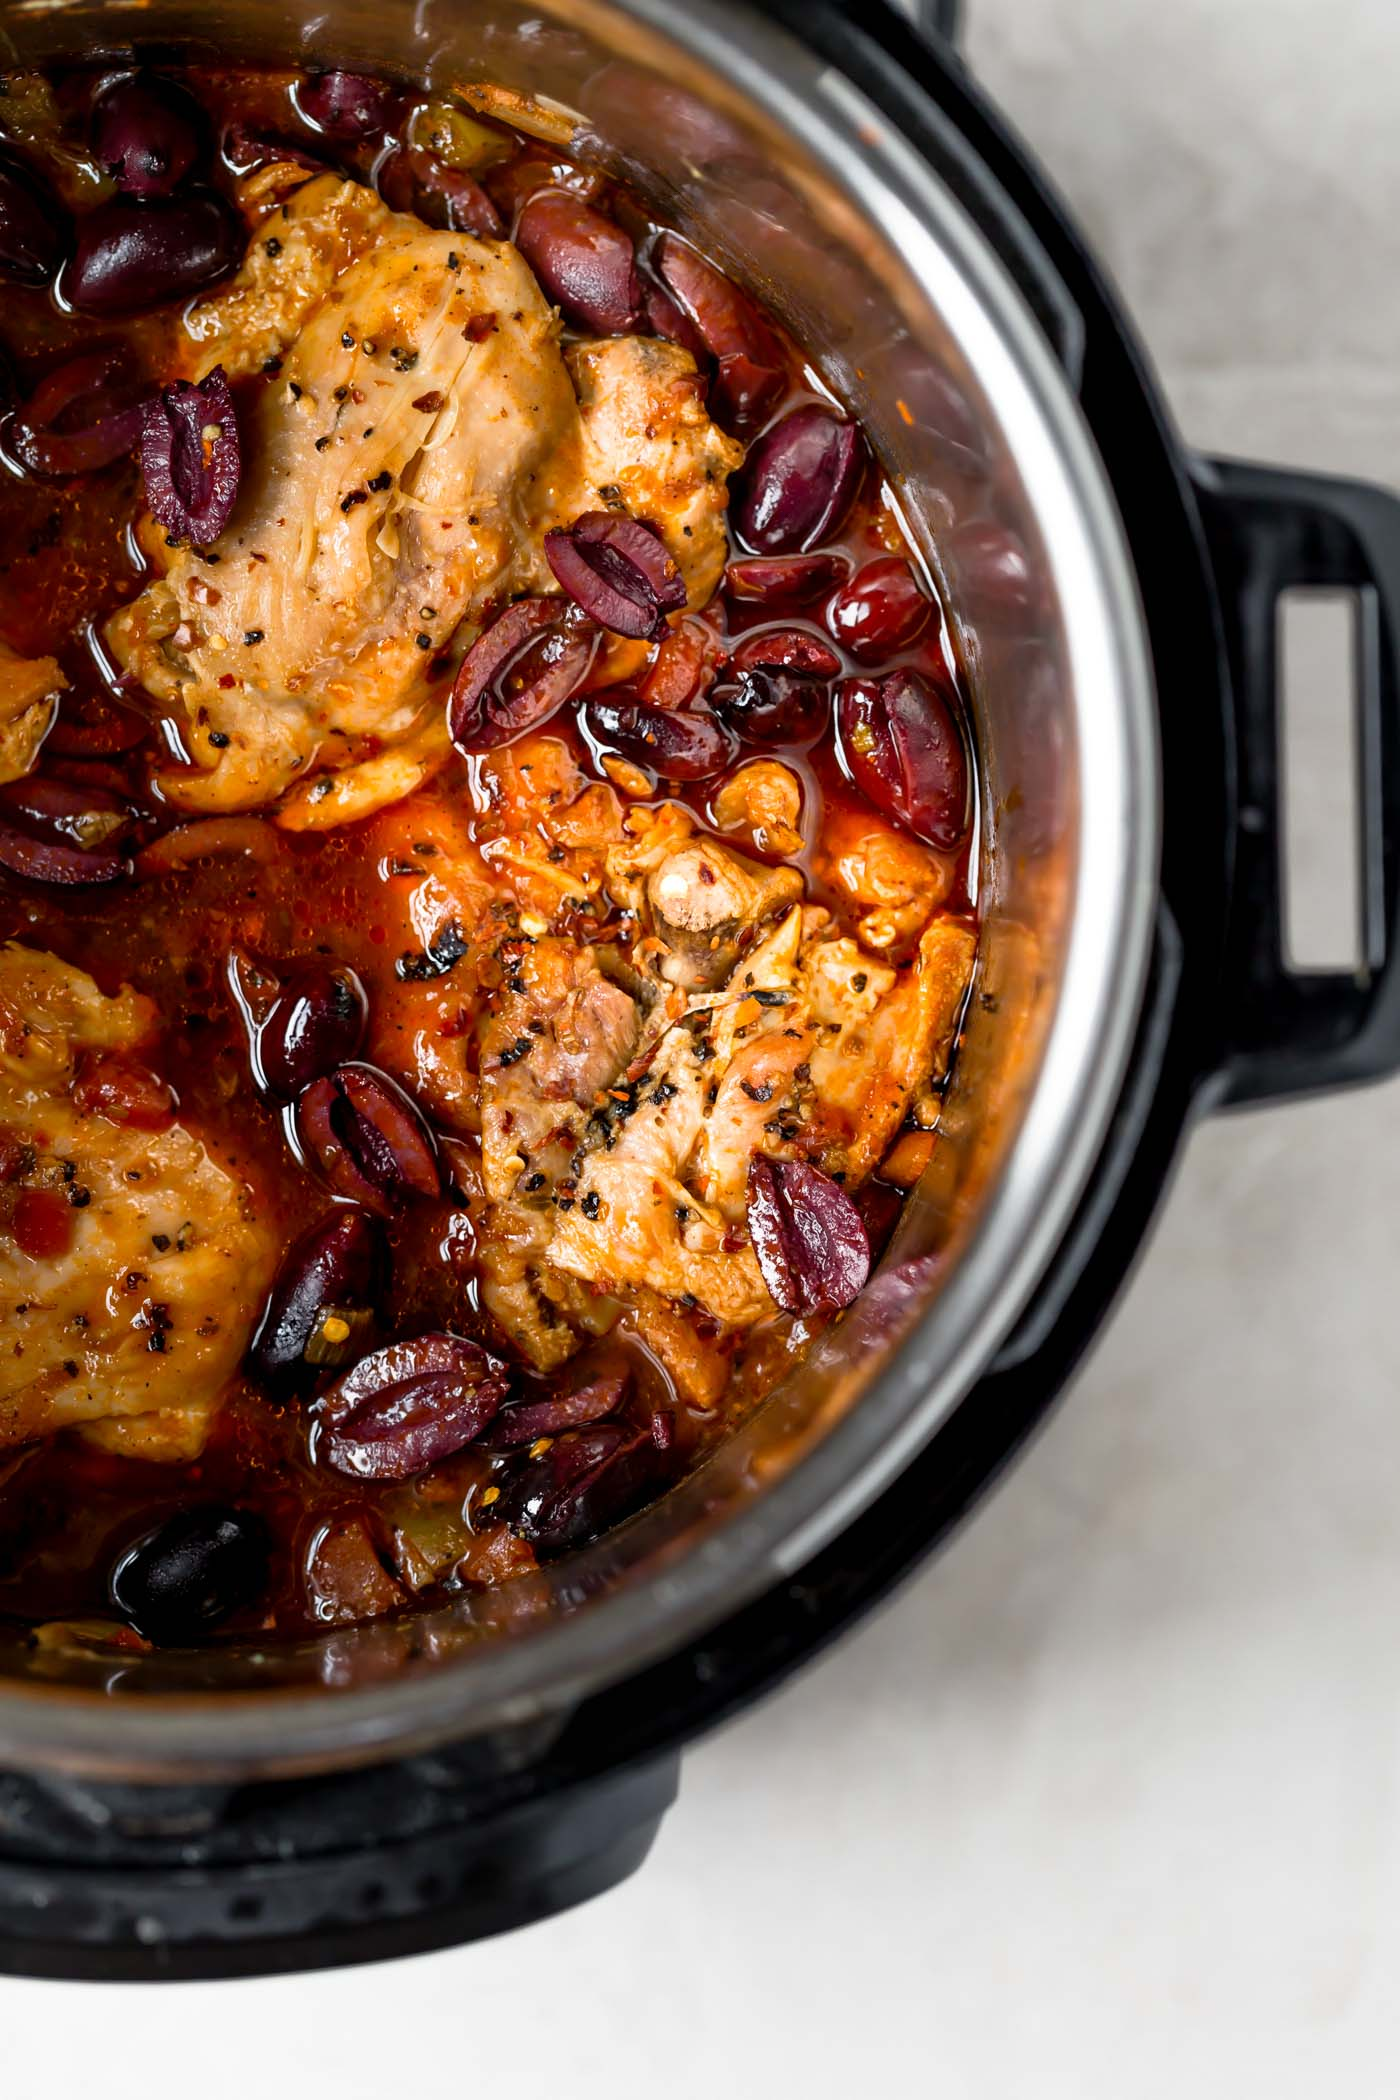 "instant pot chicken cacciatore will be your new favorite weeknight dinner! with tomatoes, peppers, mushrooms, & wine, this chicken cacciatore recipe offers all of the rich, traditional flavor of authentic italian ""hunter-style"" braised chicken, but is made so, so easy by using the instant pot! #playswellwithbutter #chickencacciatore #easychickencacciatorerecipe #instantpotrecipe #instantpotrecipesforbeginners #authenticitalianrecipes #italianrecipeswithchicken"